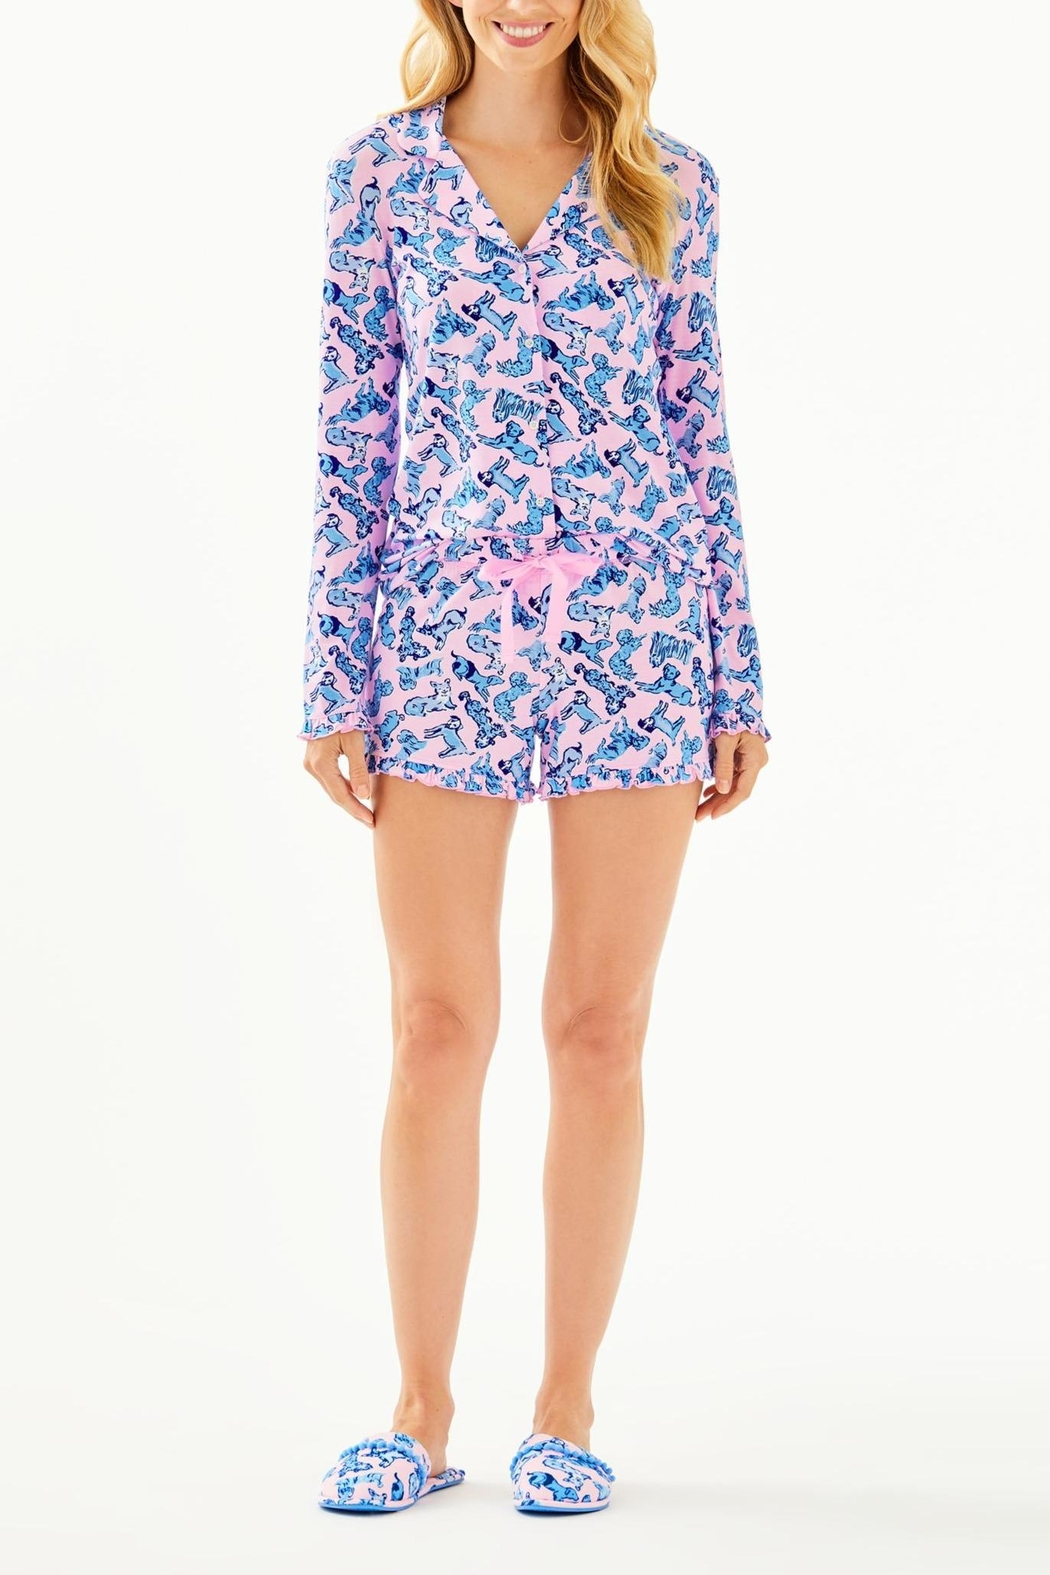 Lilly Pulitzer Ruffle Pj Short - Back Cropped Image